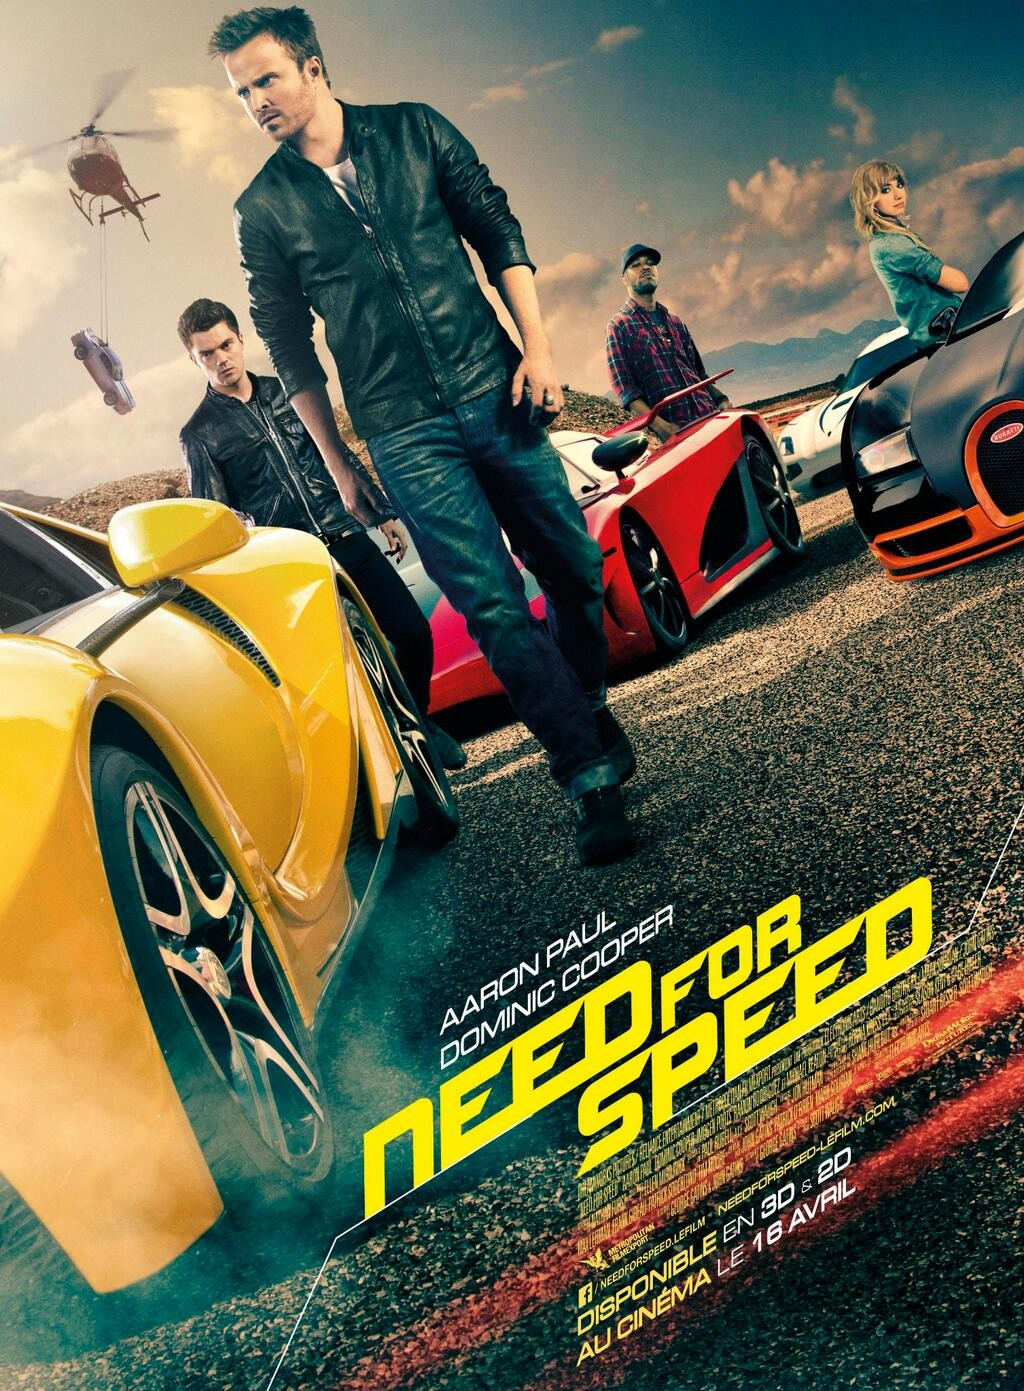 Aaron Paul Has a Need For Speed In Films Home Release Clips Aaron Paul Has a Need For Speed In Film Clips